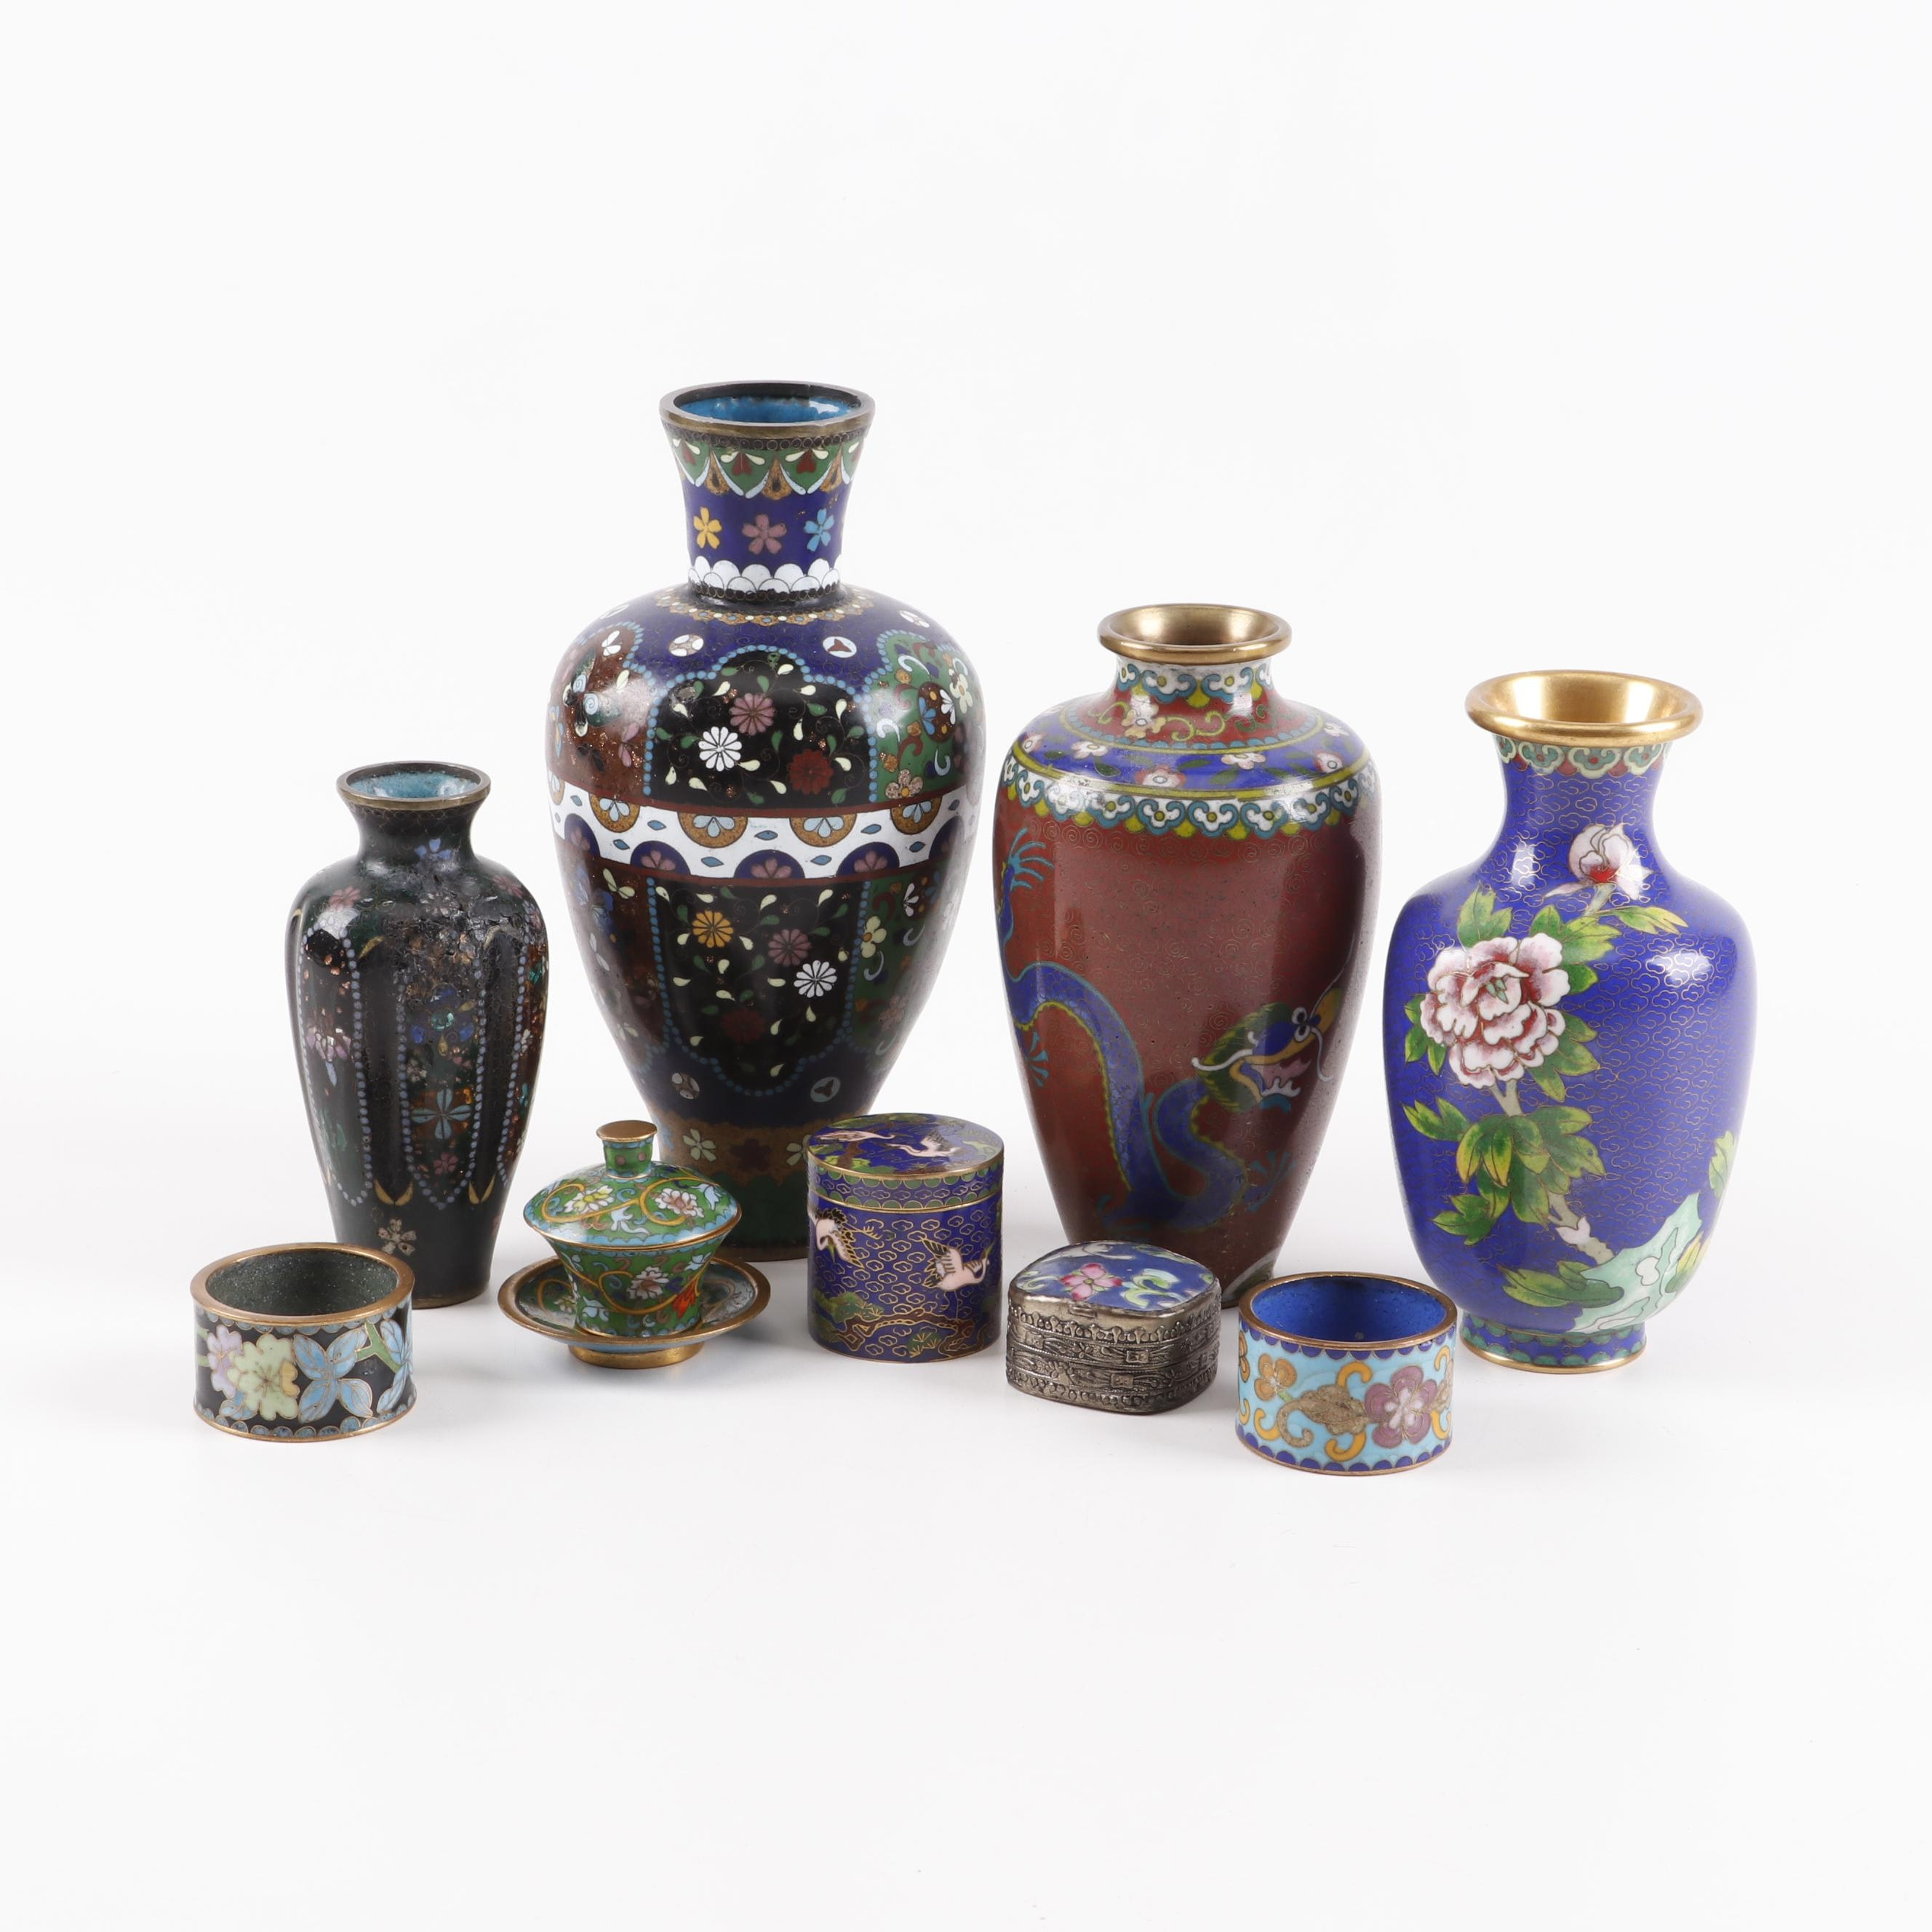 Chinese and Japanese Cloisonné Vases, Decorative Boxes, and Napkin Rings